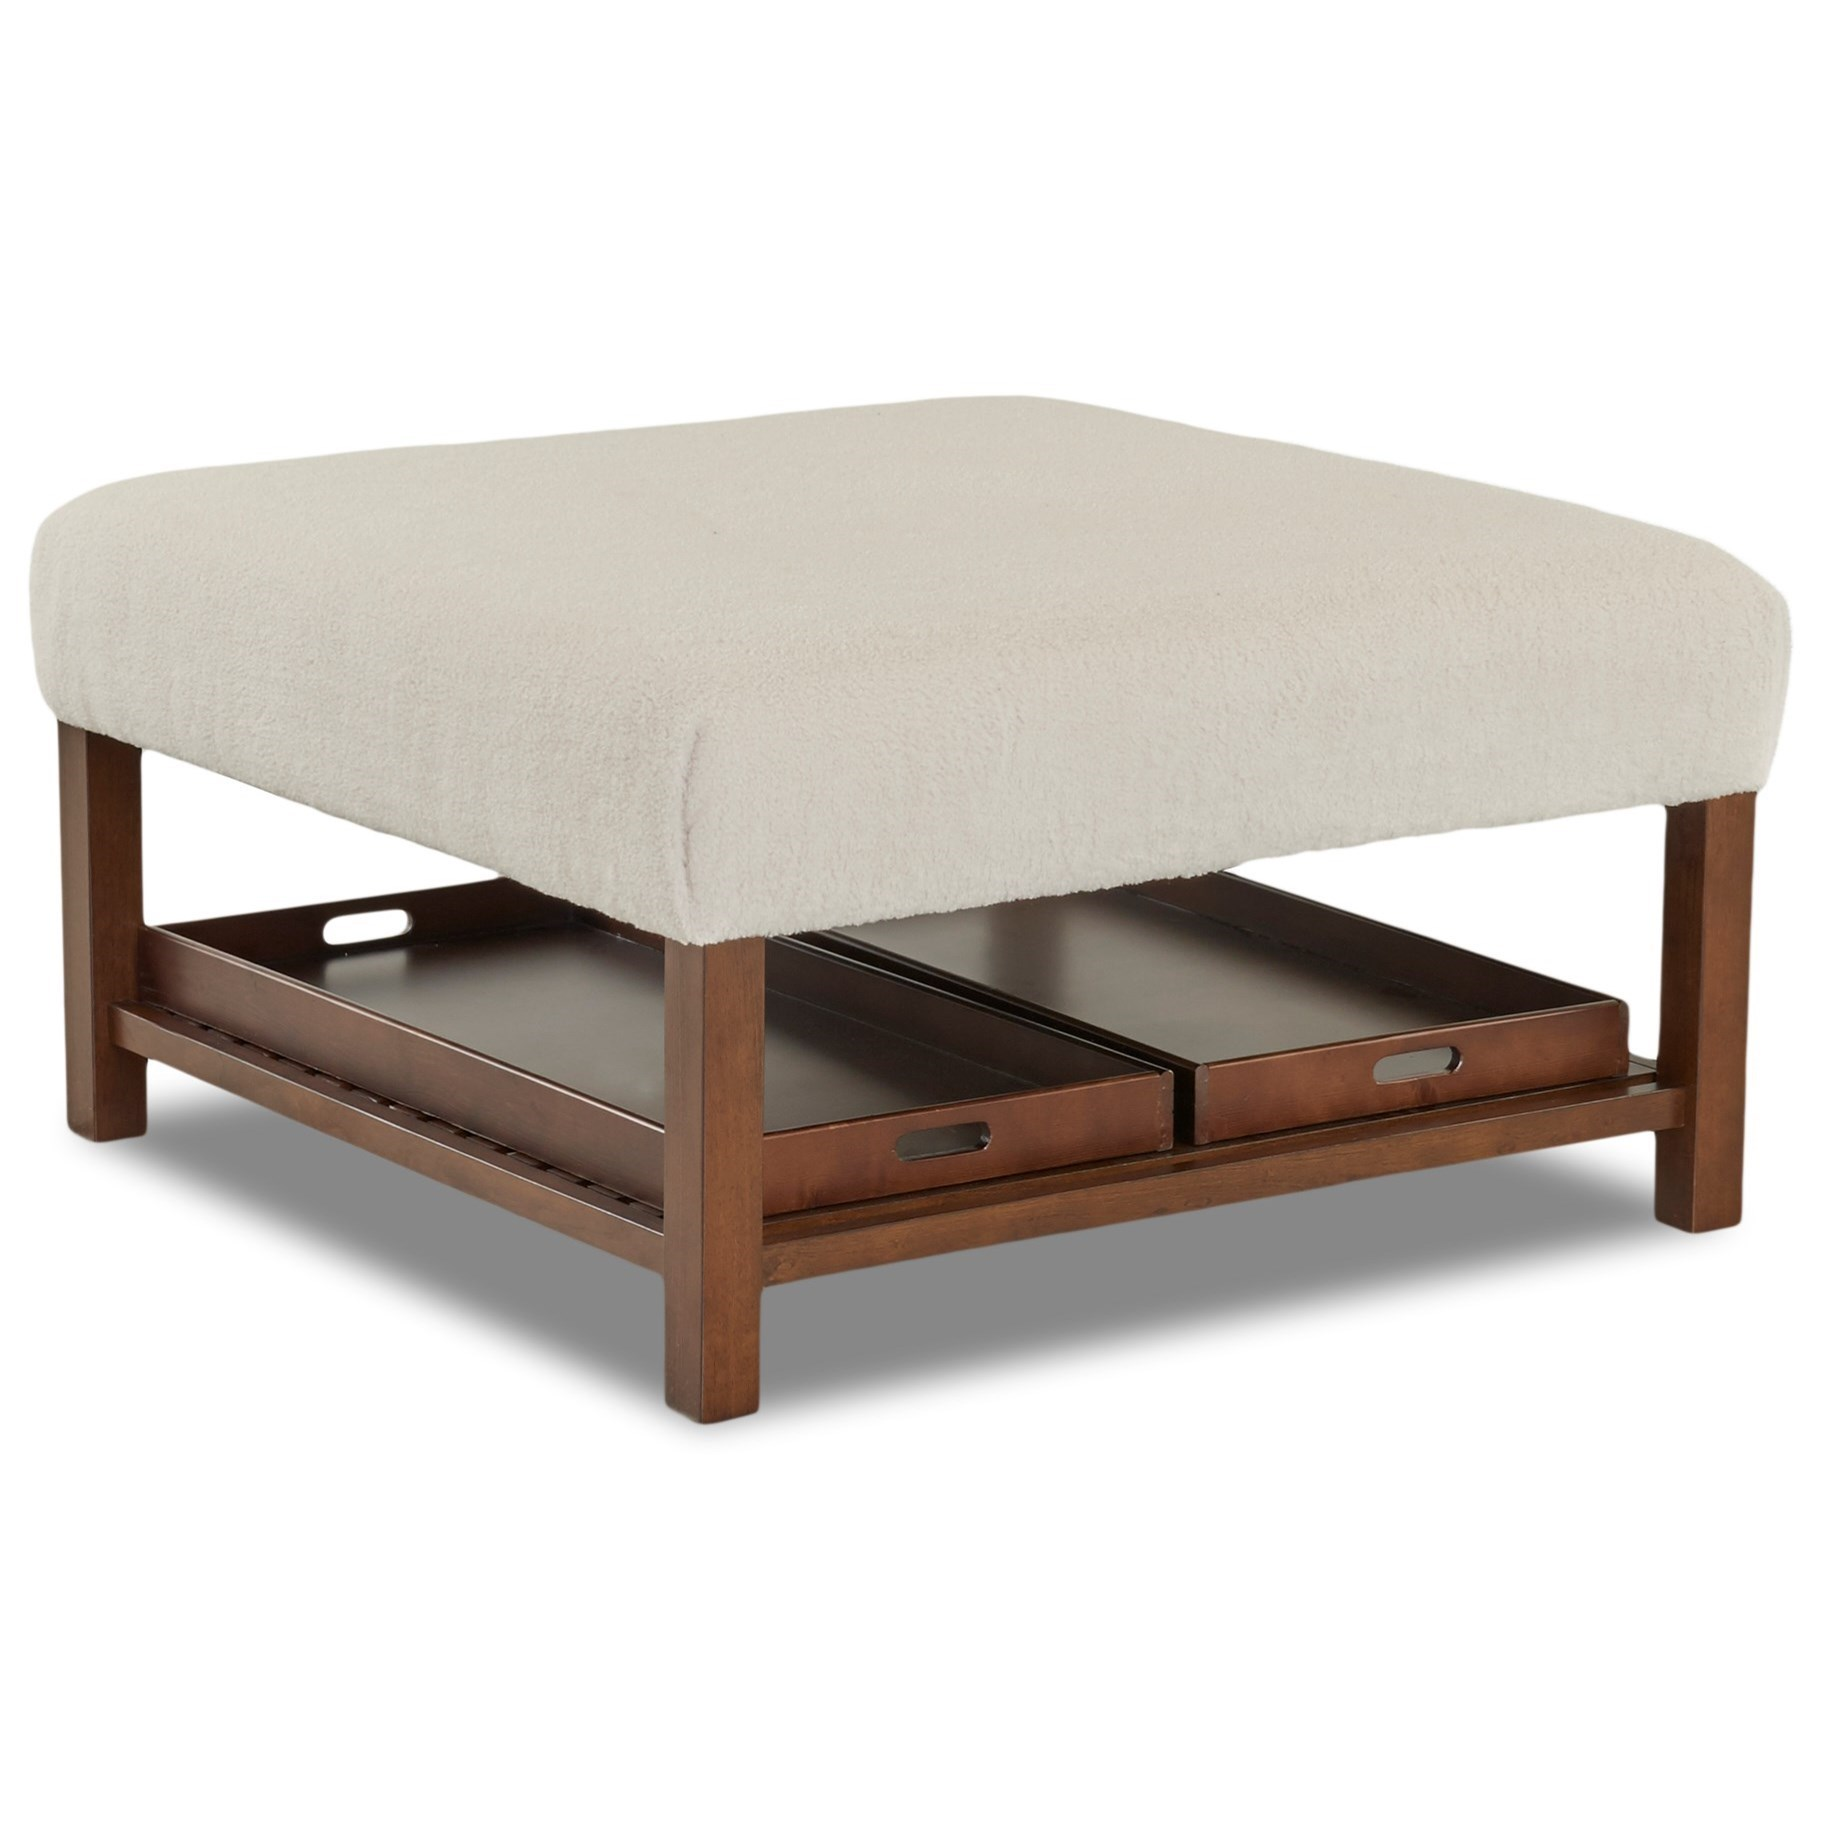 chairs and accents square ottoman